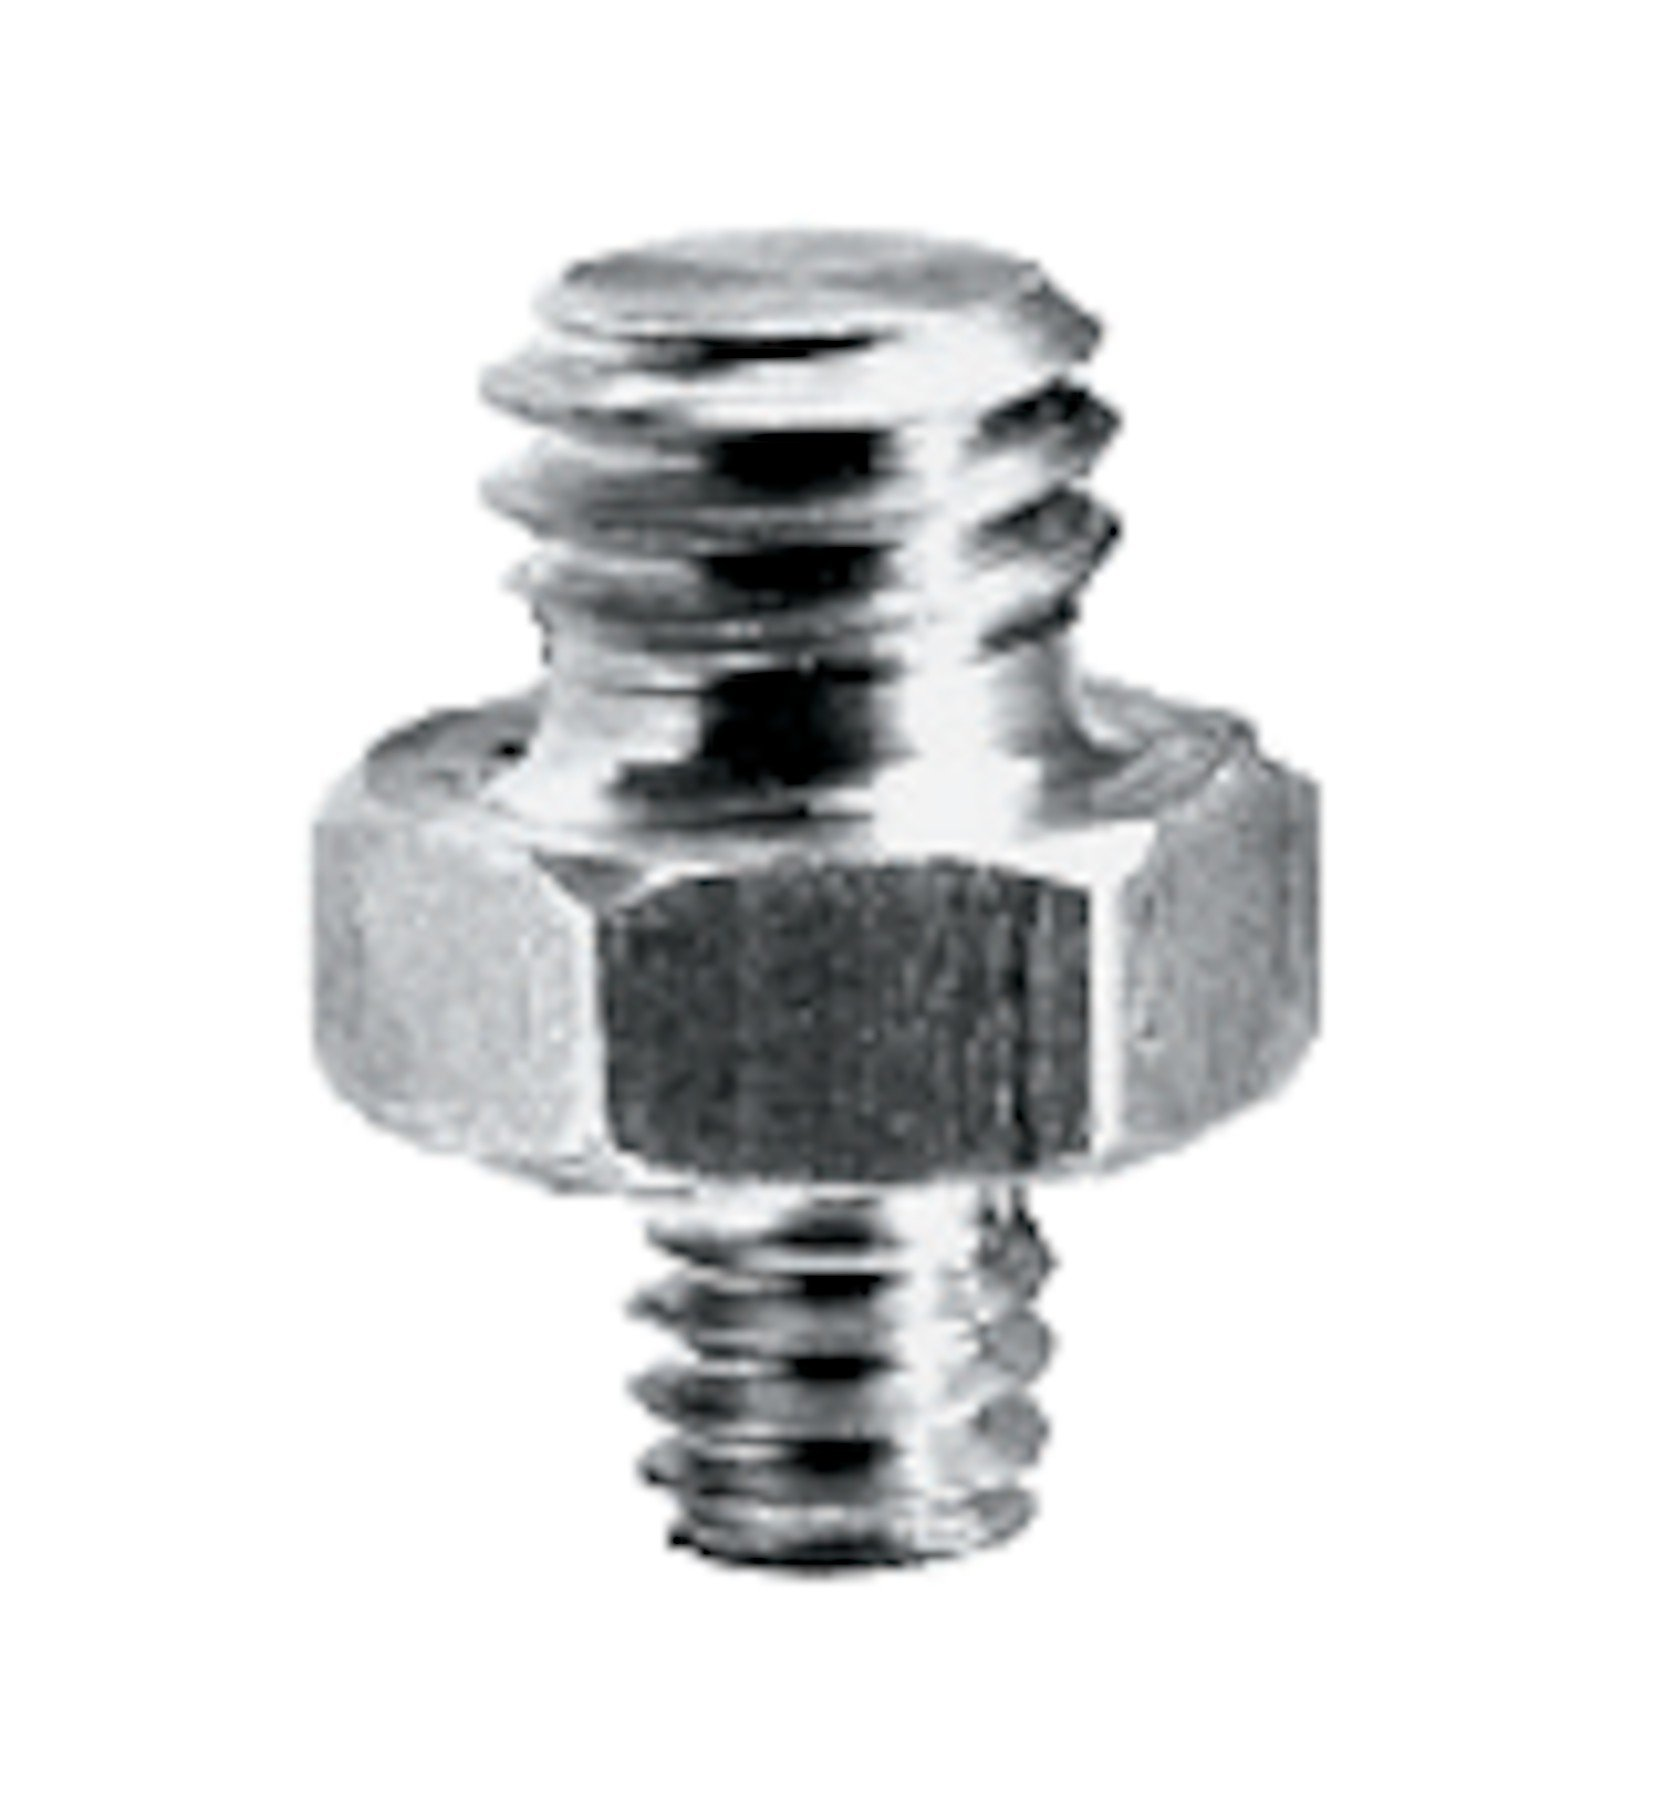 "Short Adapter Spigot with 1/4"" and 3/8"" Screws"